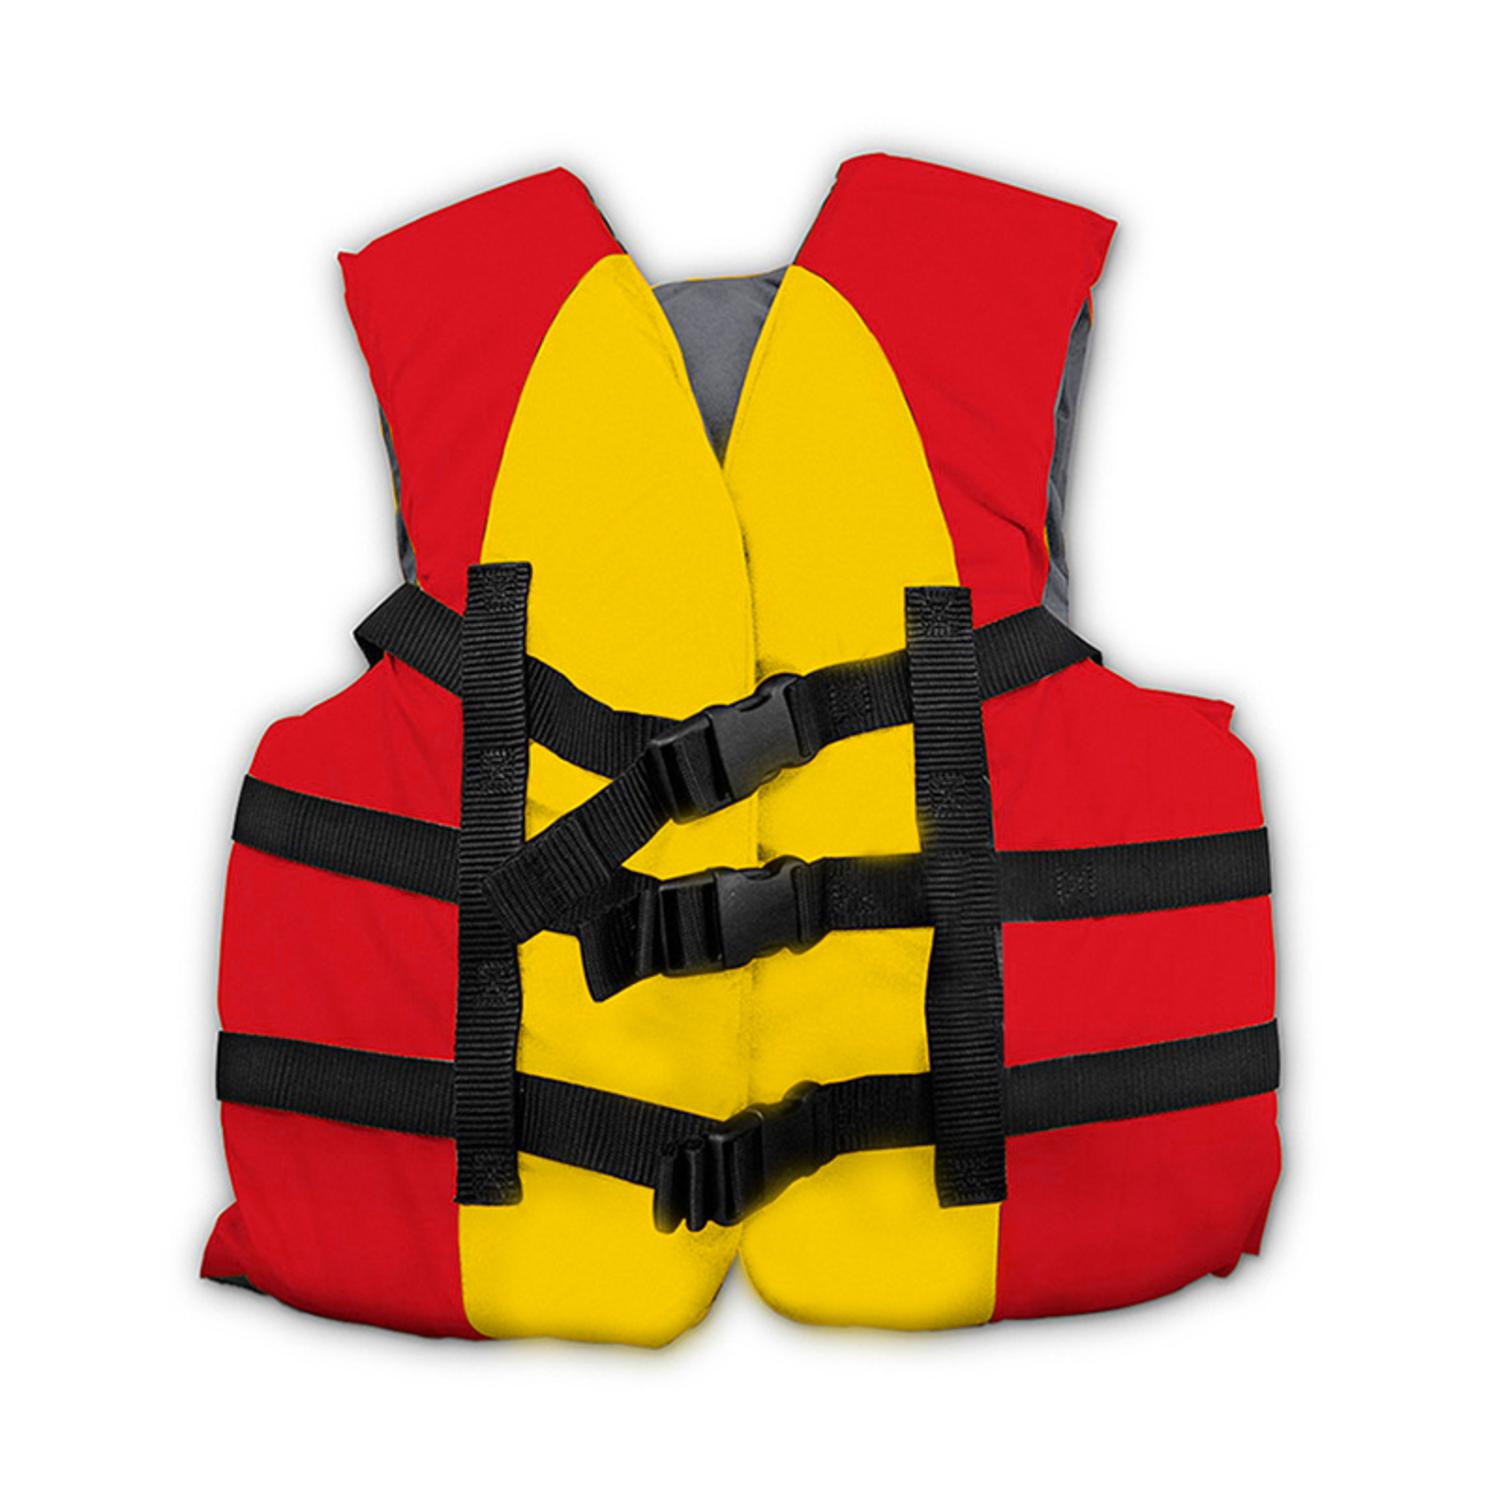 USCG Approved Water or Swimming Pool Red & Yellow Child Life Vest  - Up to 90lbs